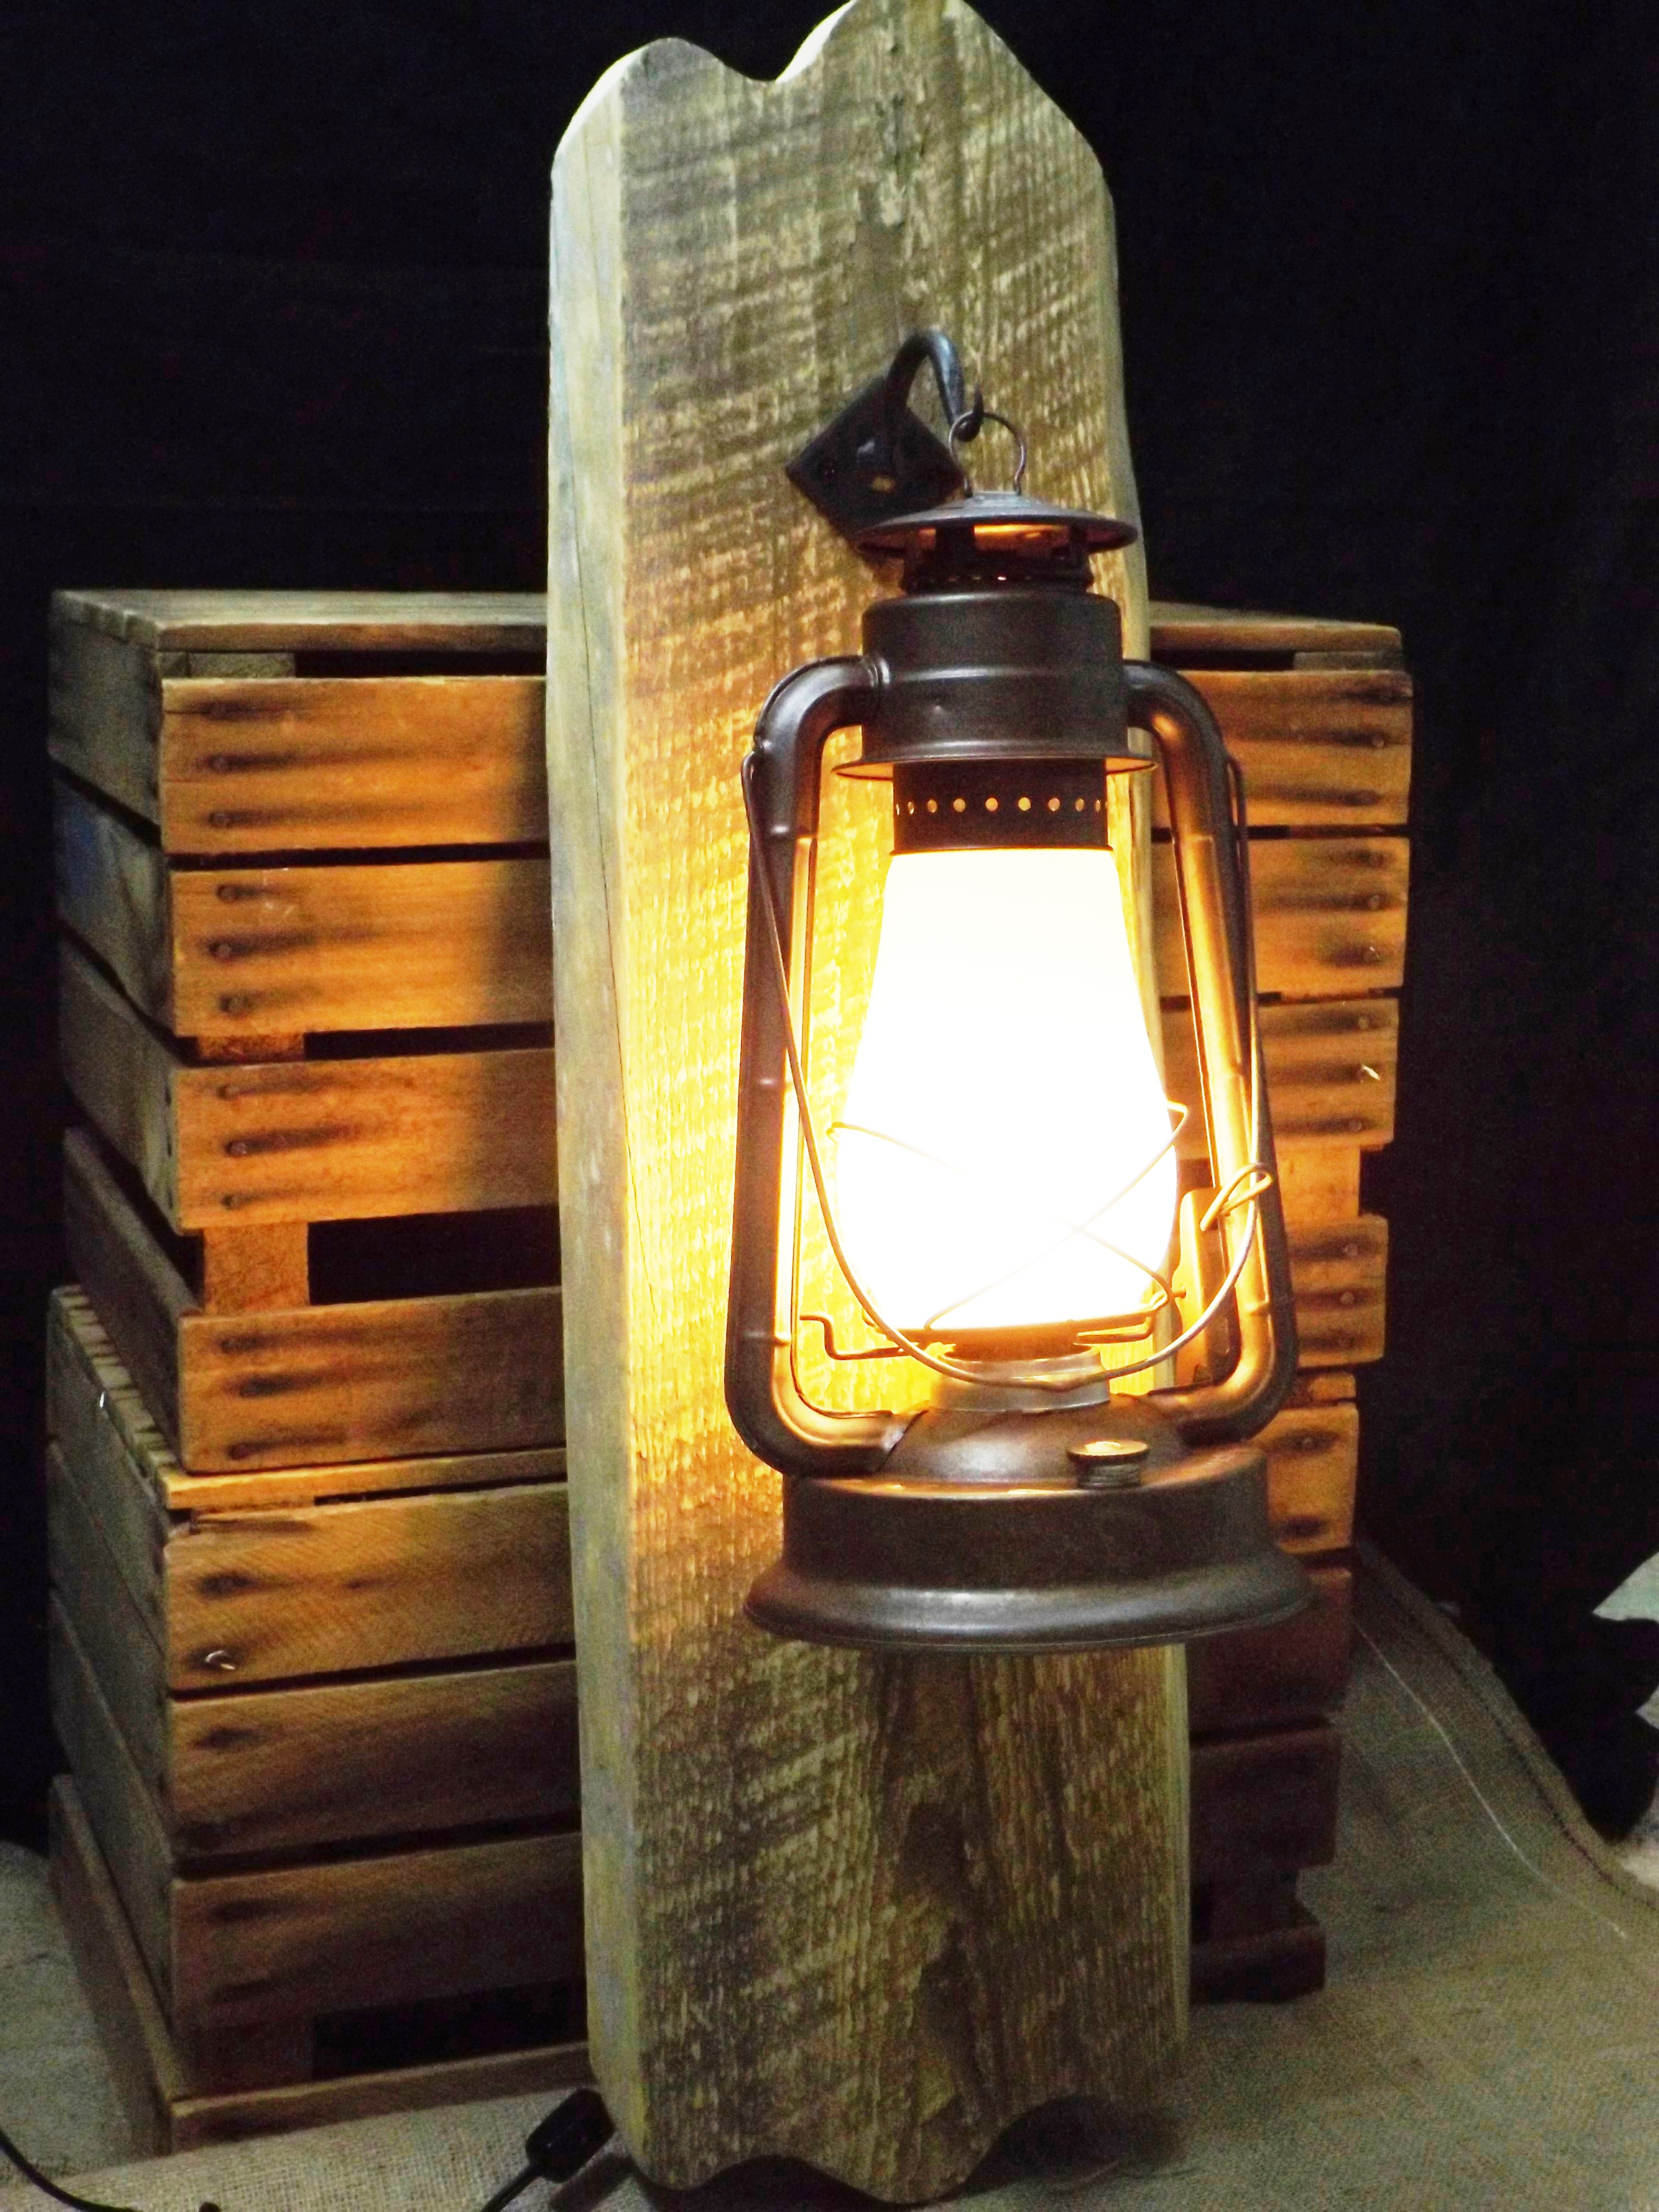 this is our large rustic wall sconce electric lantern lighting by big rock lanterns http